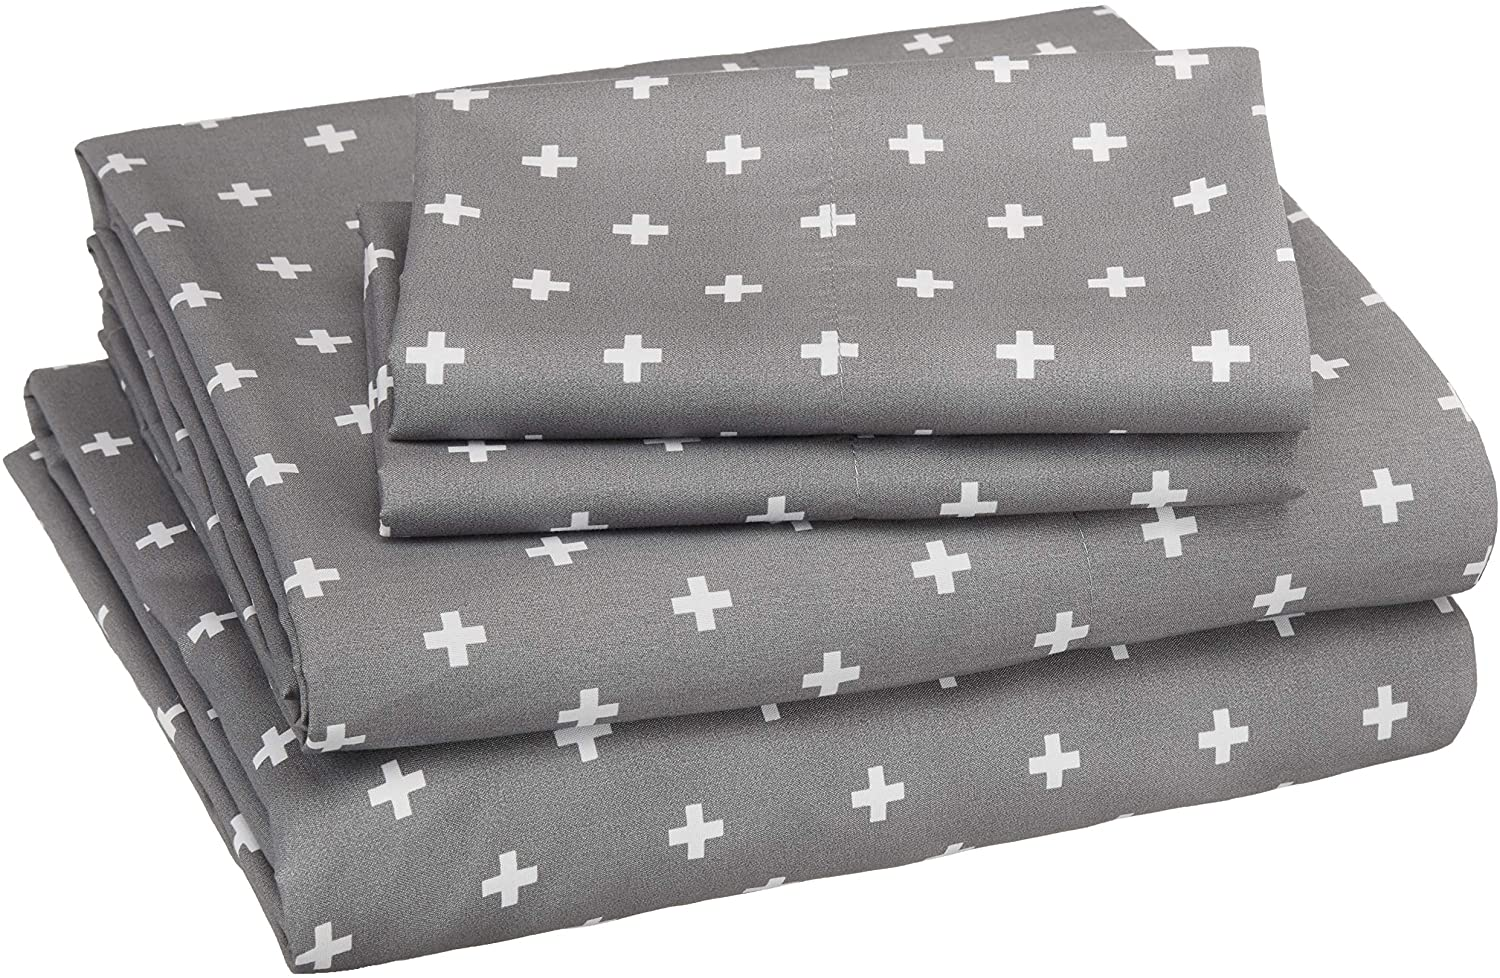 AmazonBasics Soft Microfiber Sheet Set with Elastic Pockets - Queen, Grey Plus's